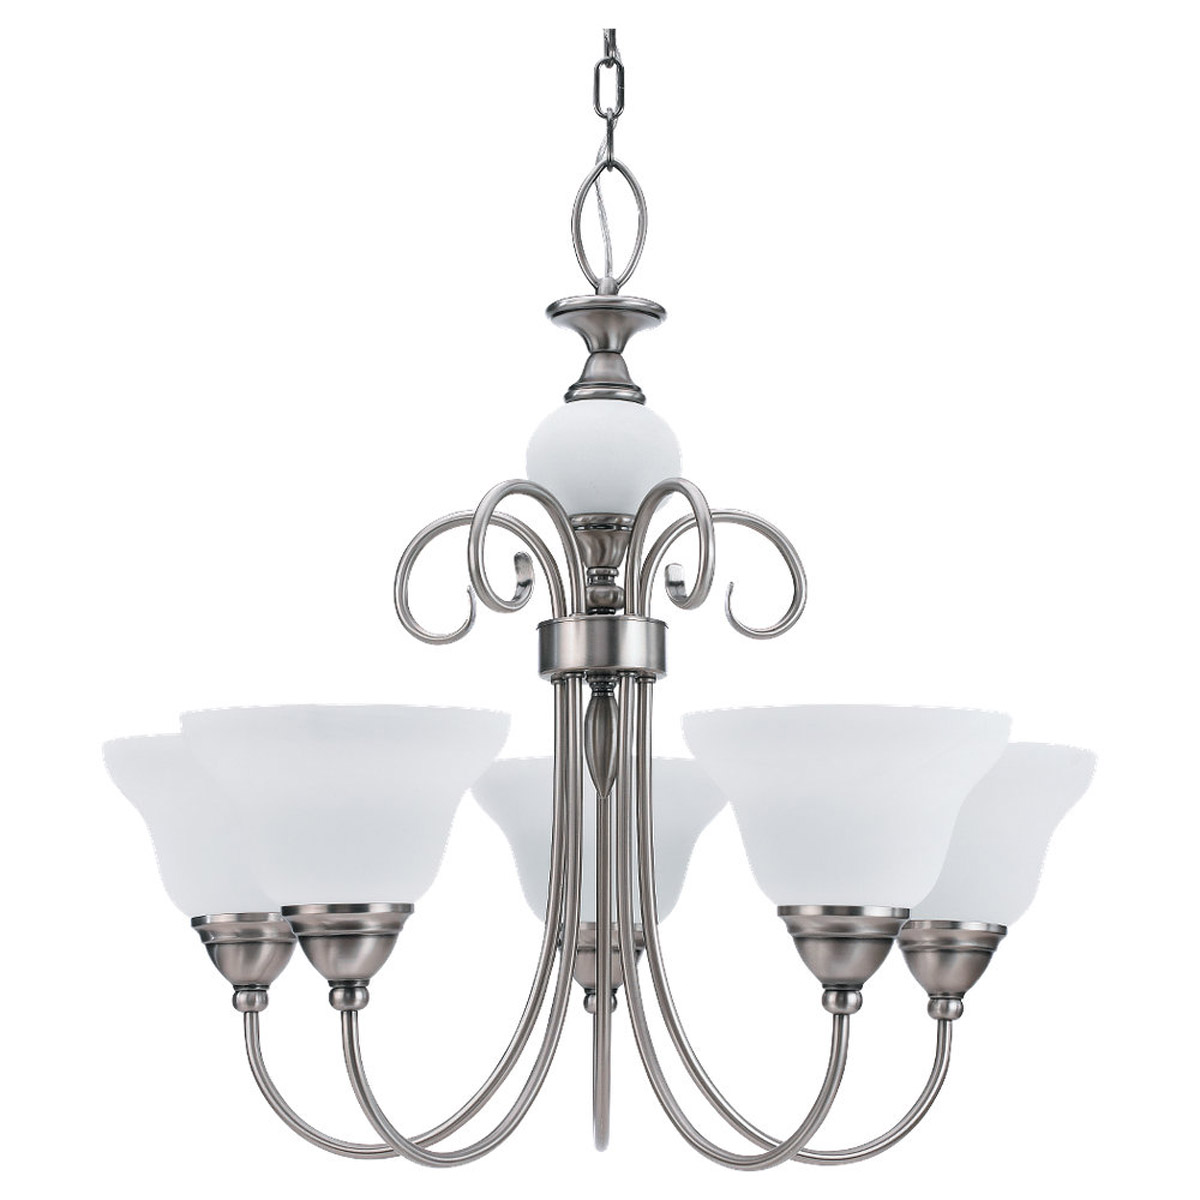 Sea Gull Lighting Montclaire 5 Light Chandelier in Antique Brushed Nickel 31106-965